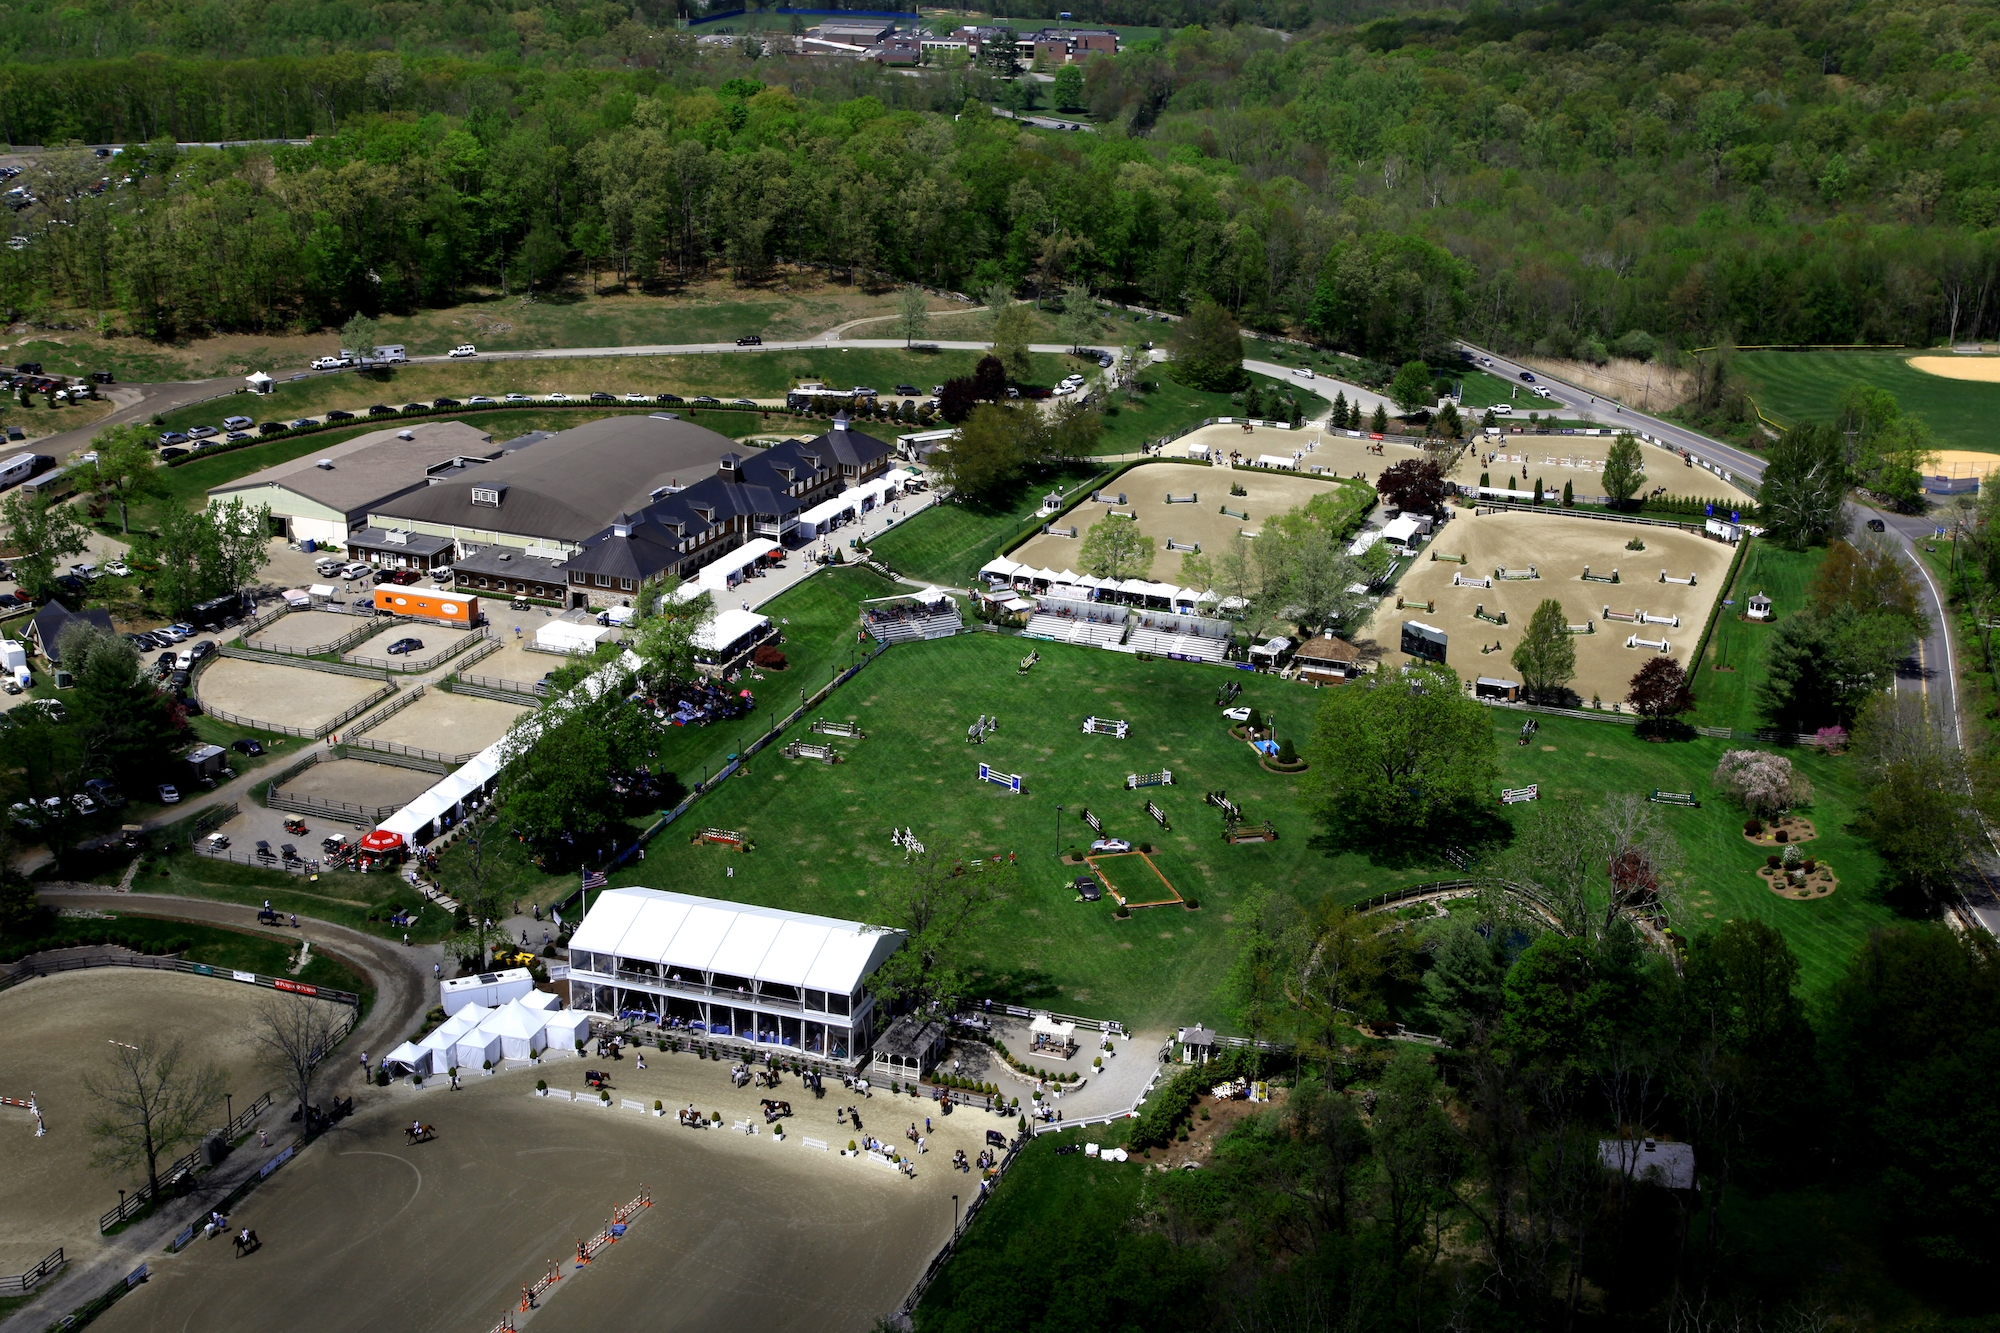 Old Salem Farm, located in North Salem, NY, will host the 2018 Adequan®/FEI North American Youth Championships, presented by Gotham North, on August 1 through 5. <br><b>Photo by Stephen Roe</a></b>